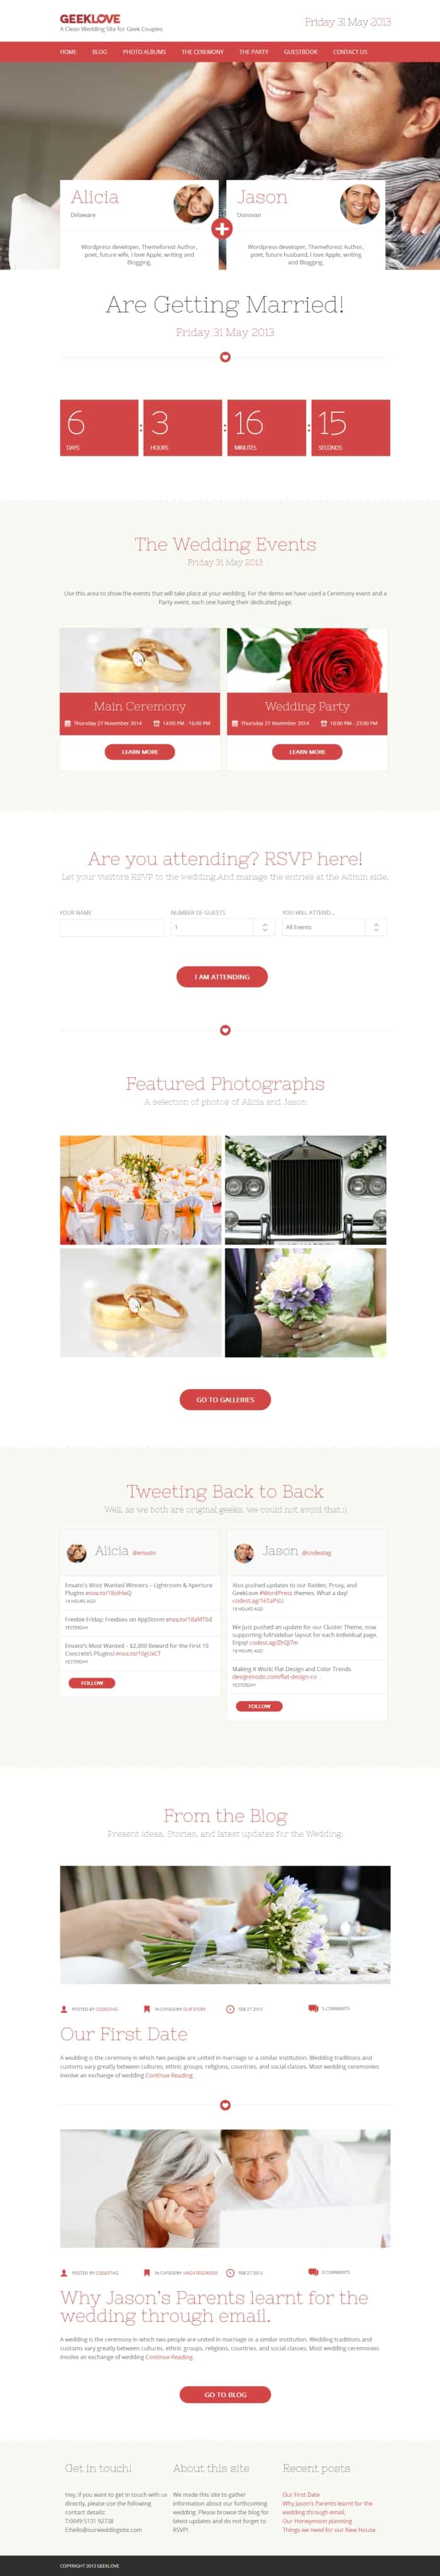 site_mariage_05